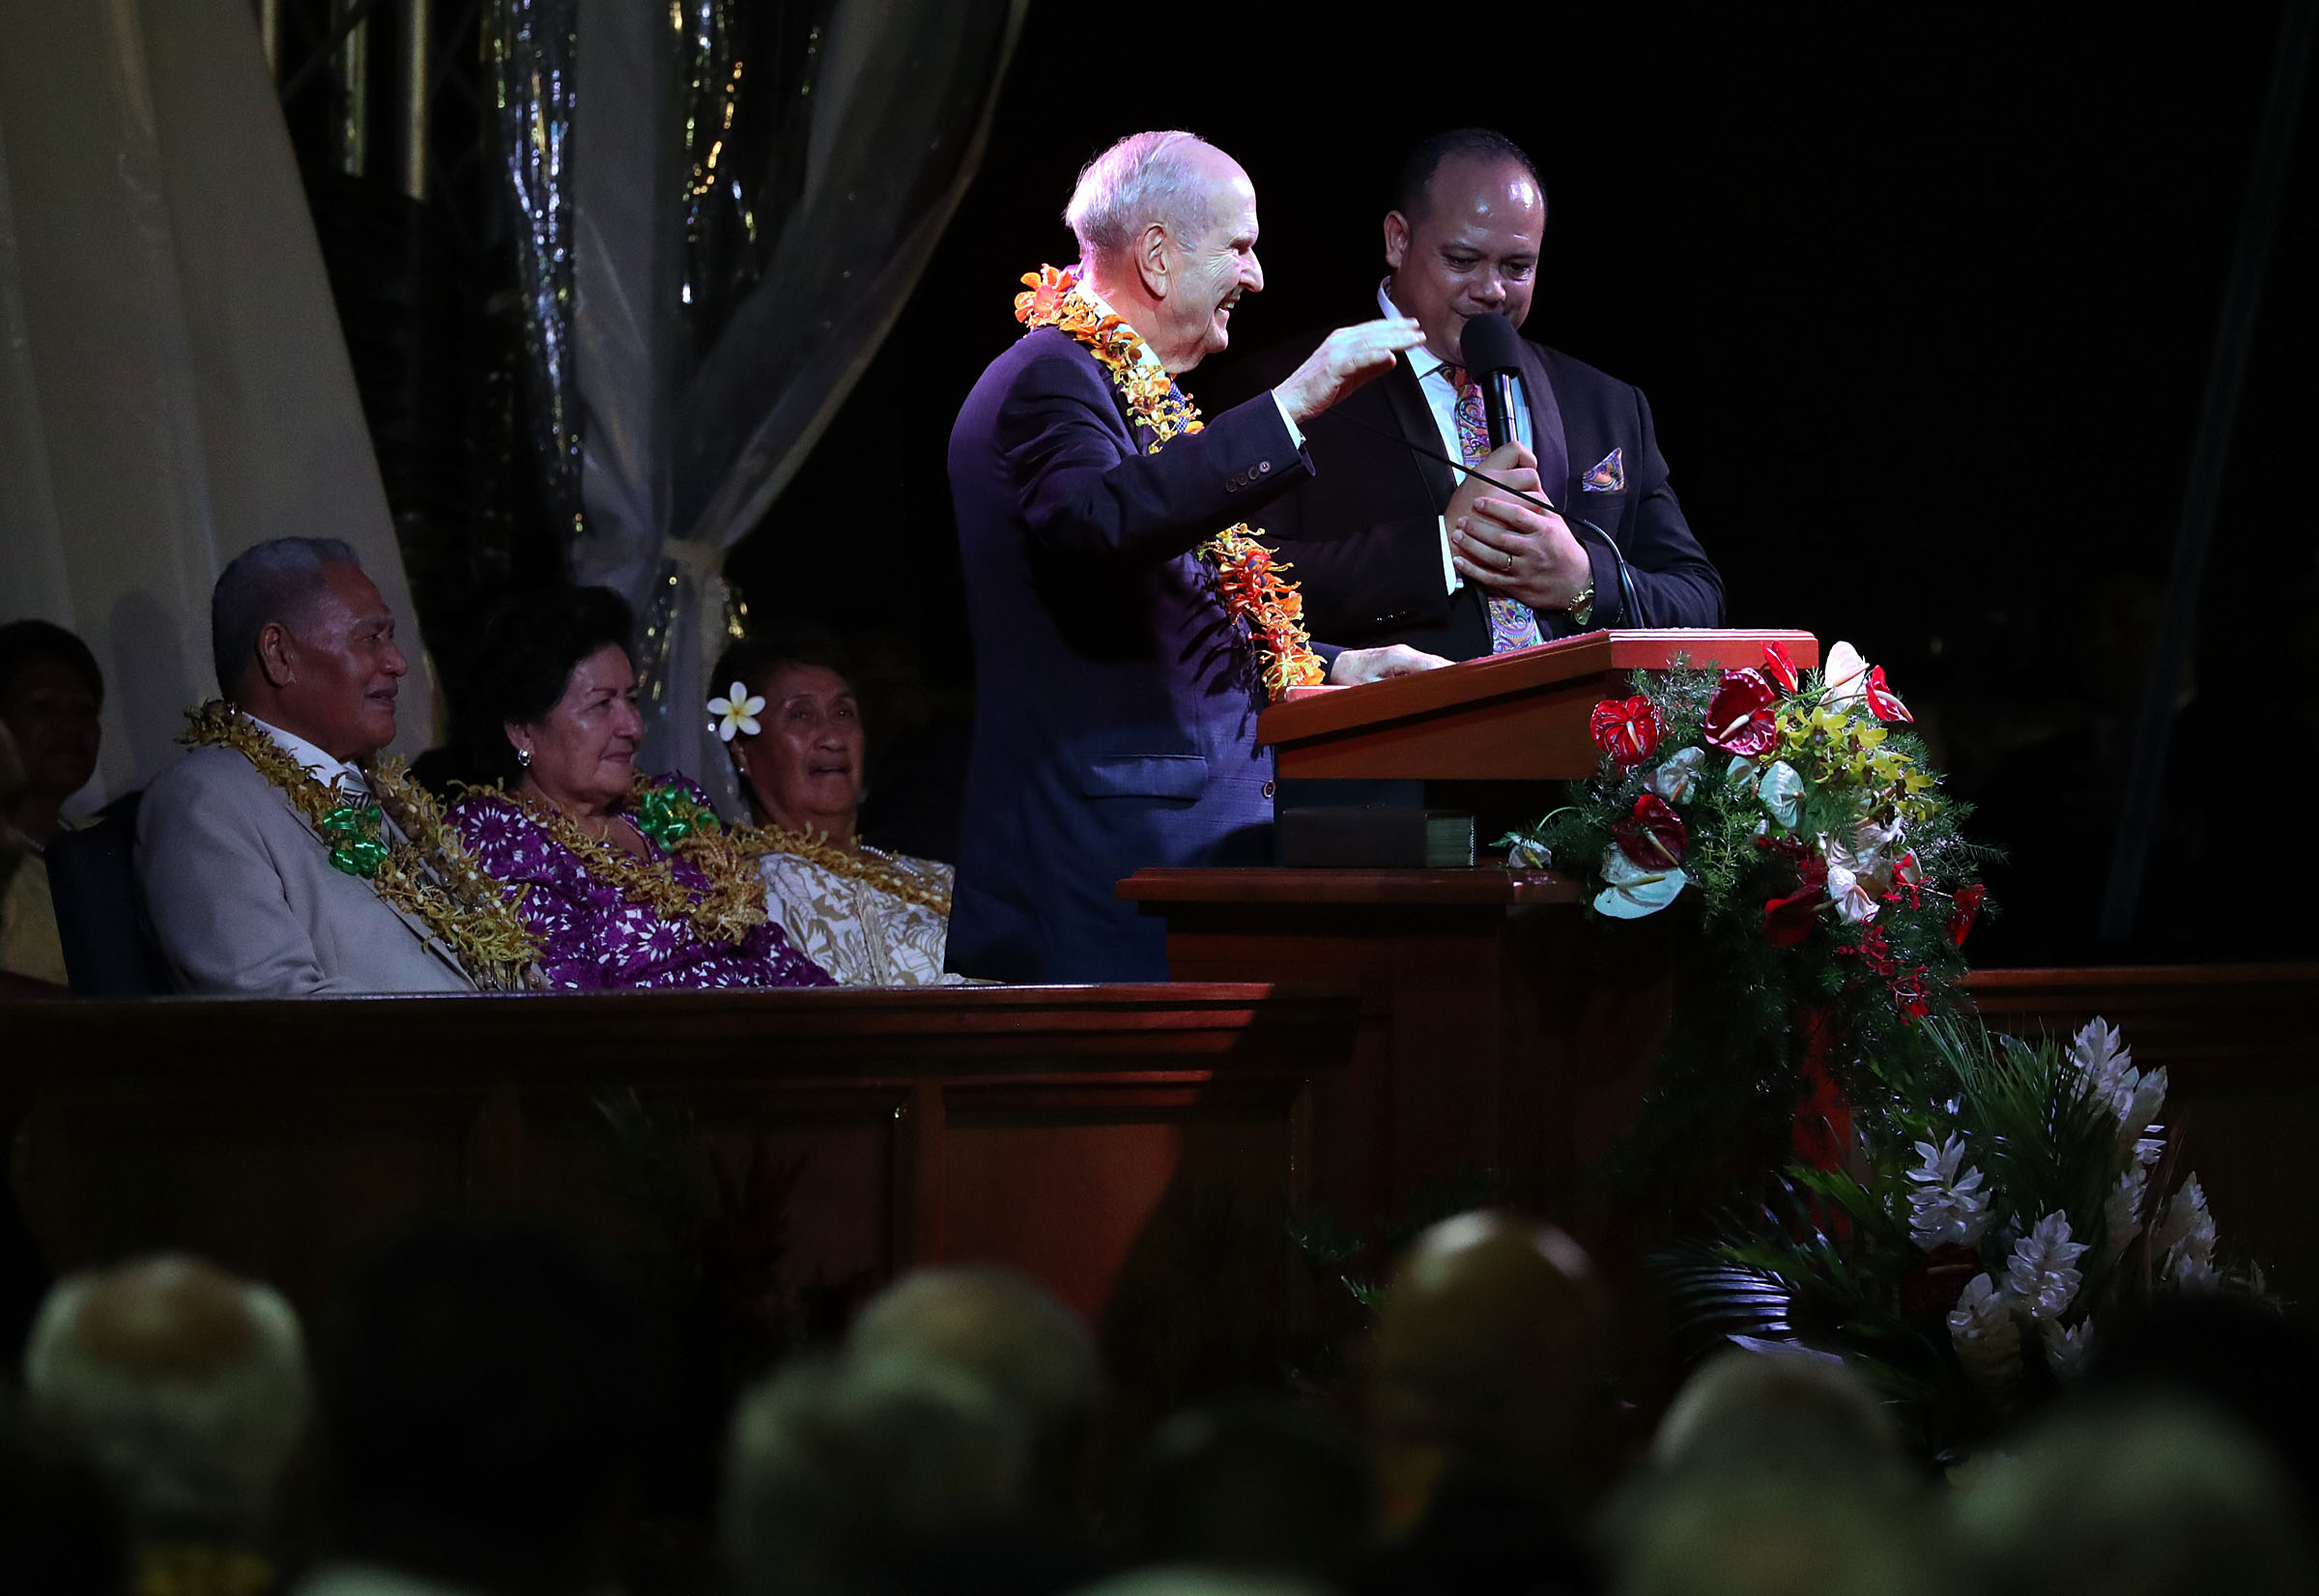 President Russell M. Nelson of The Church of Jesus Christ of Latter-day Saints speaks during a devotional in Apia, Samoa, on Saturday, May 18, 2019. At right is interpreter Jason Joseph.